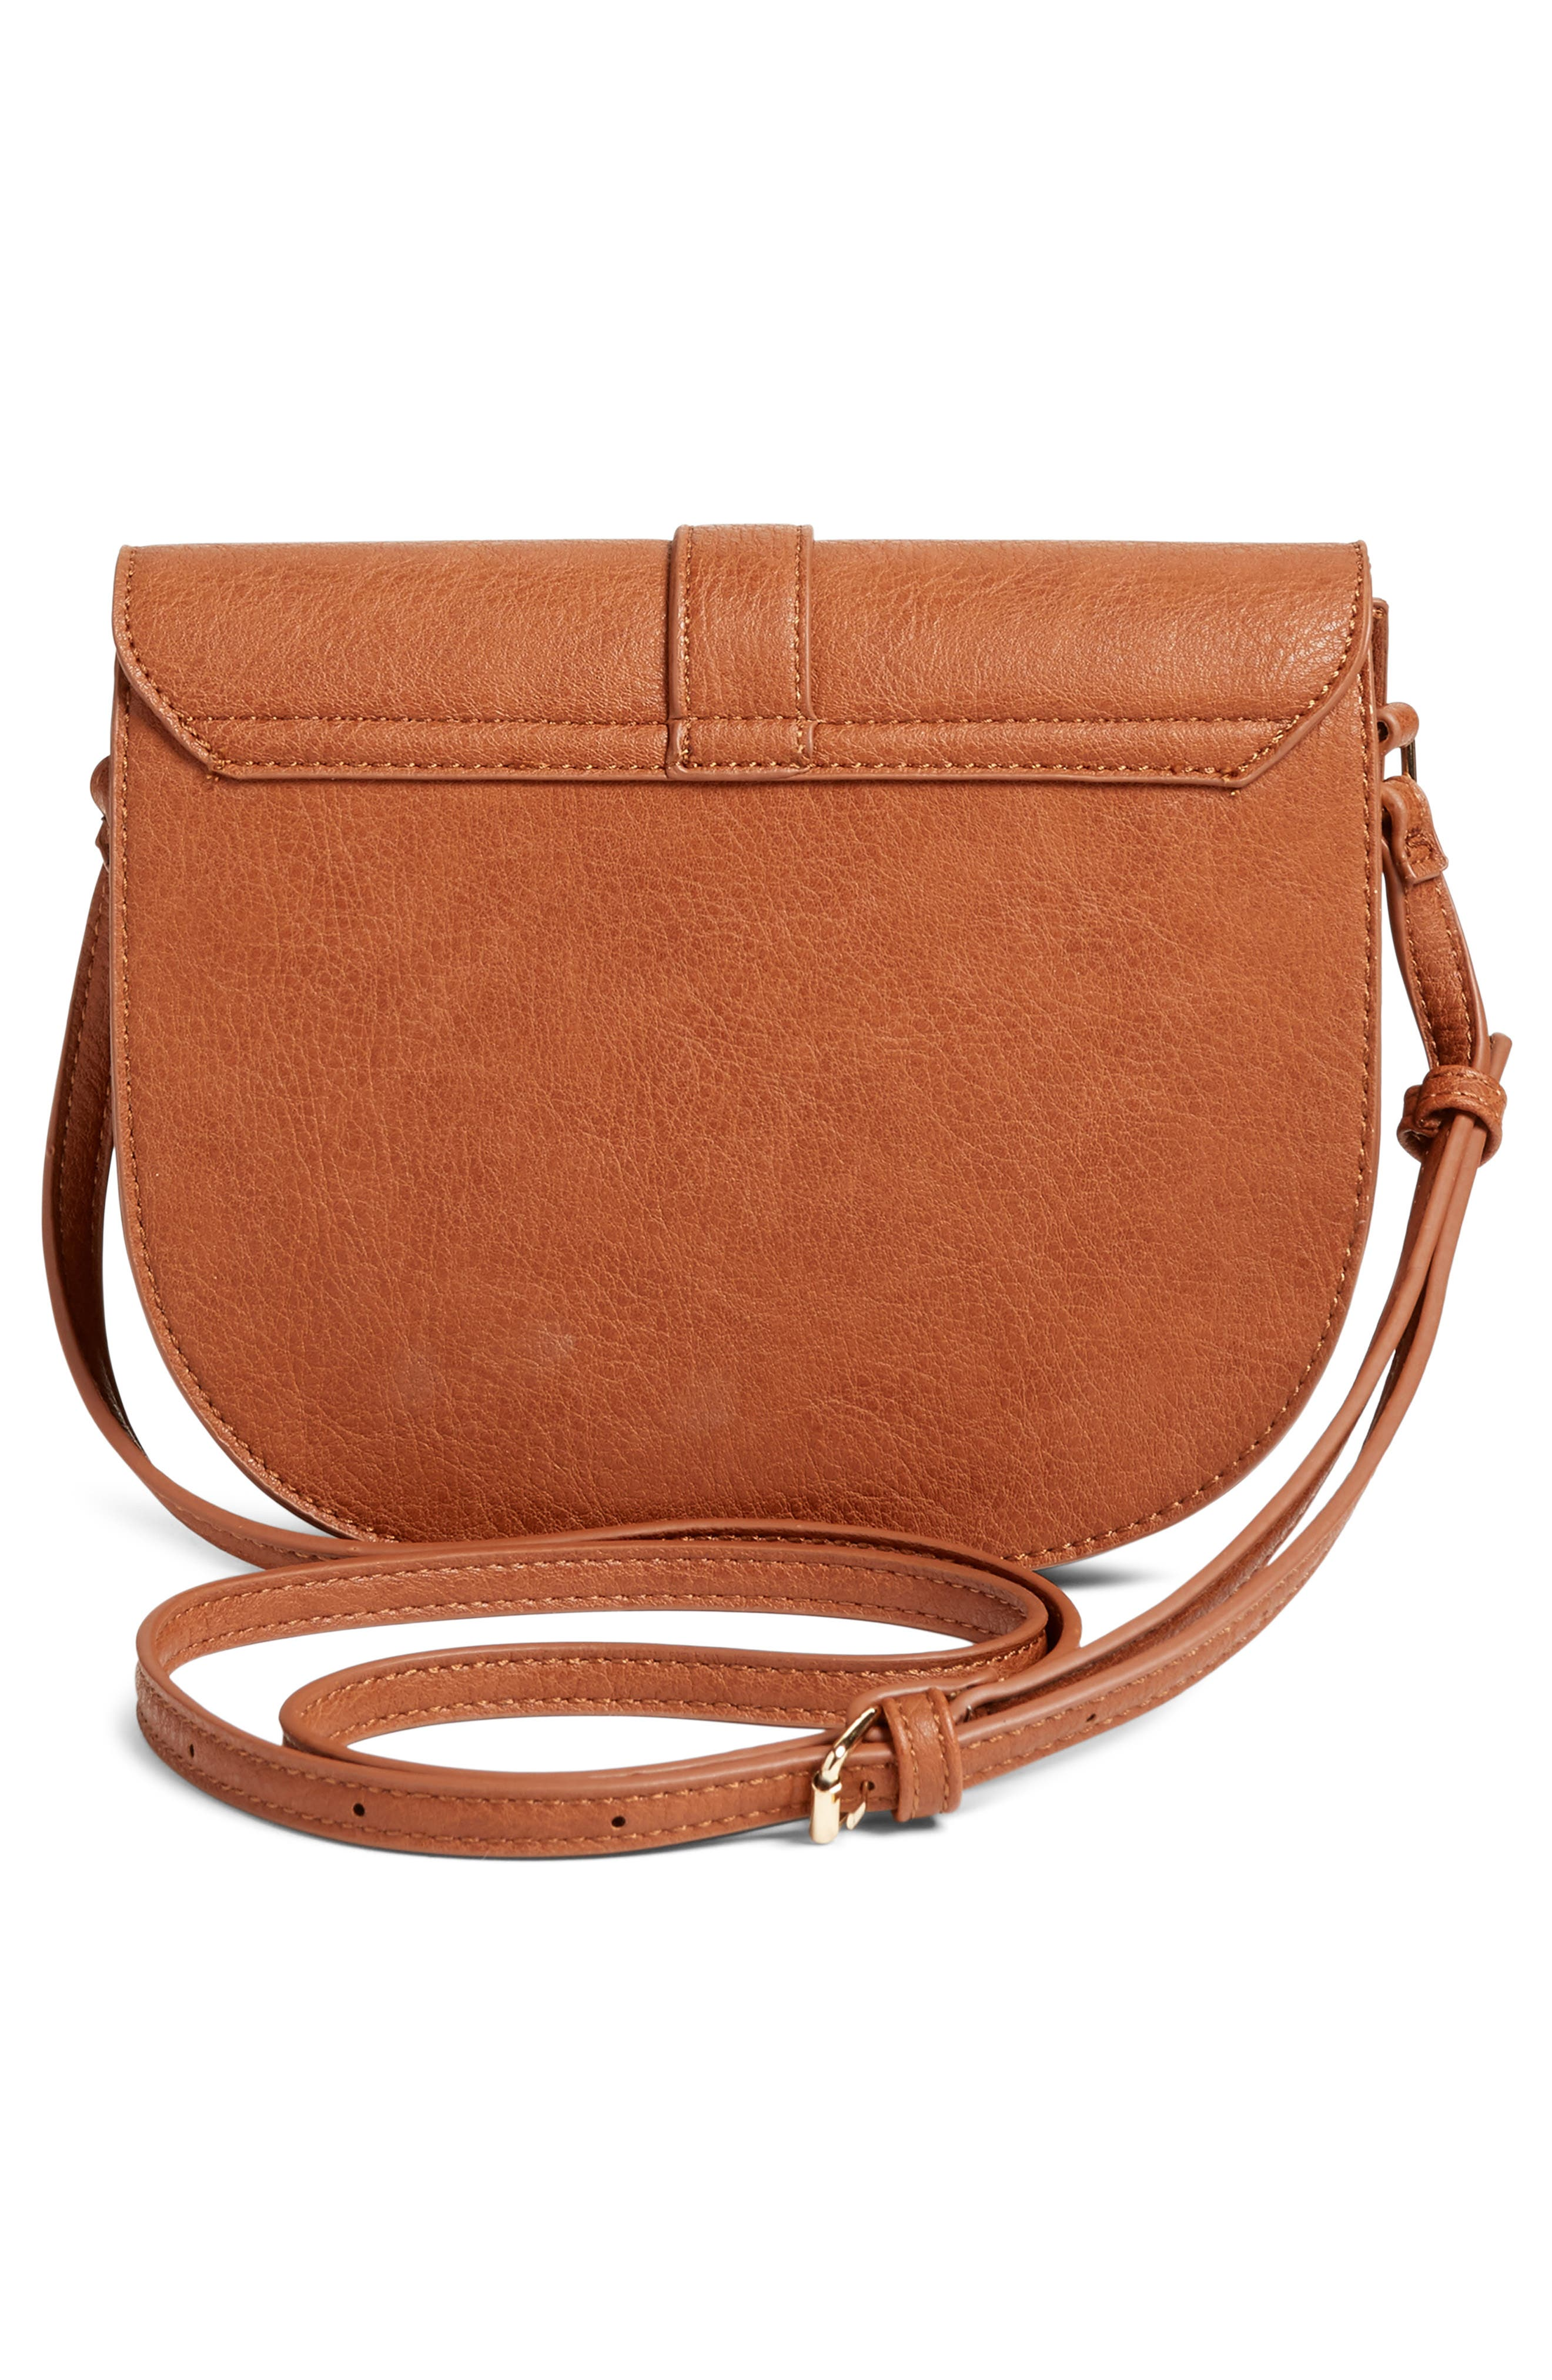 Alternate Image 3  - Emperia Faux Leather Saddle Bag (Special Purchase)